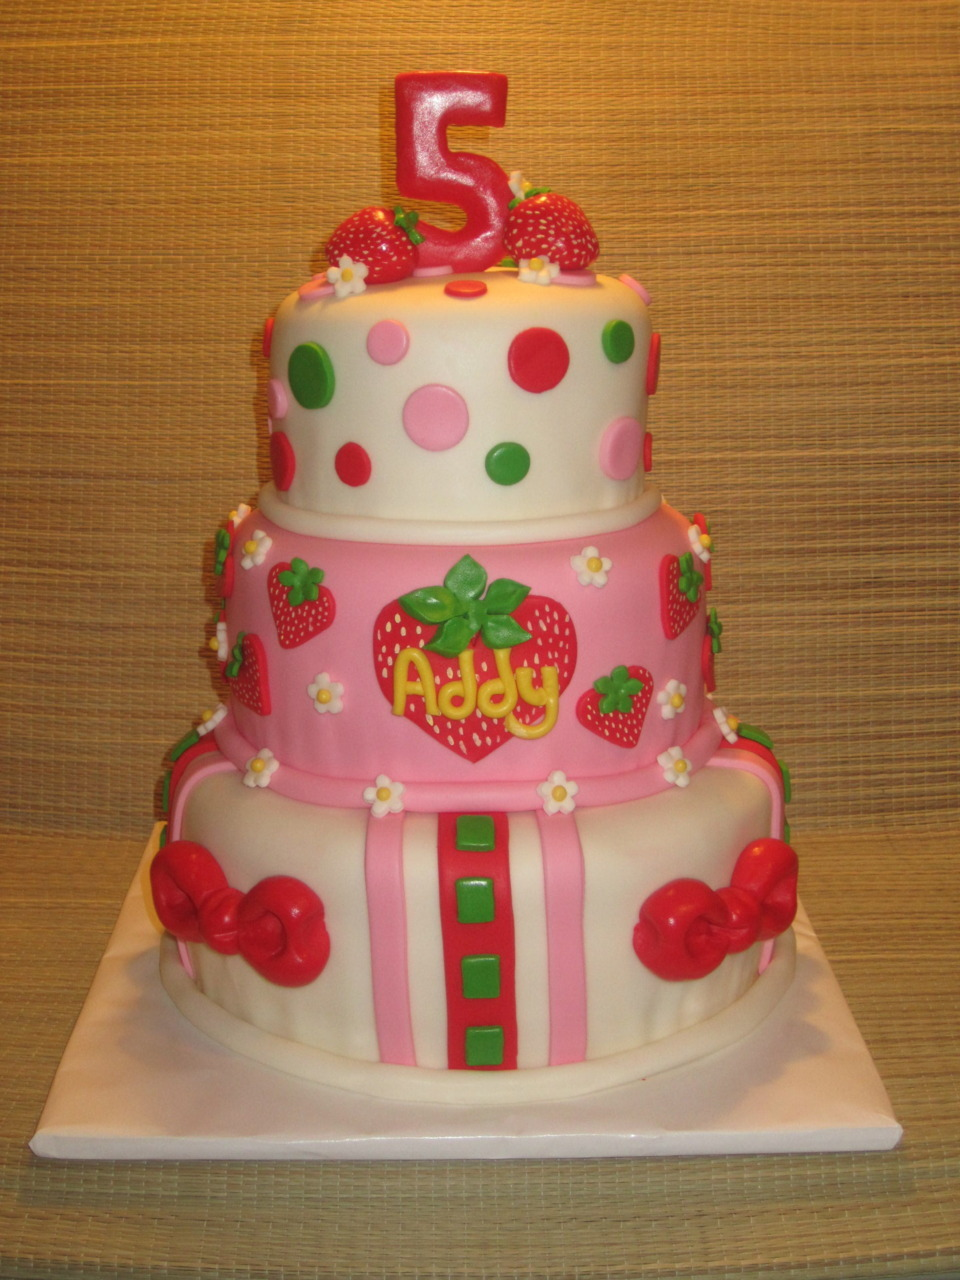 Fabulous Baker Boy created this tasty Strawberry Shortcake-themed tier cake…delicious!